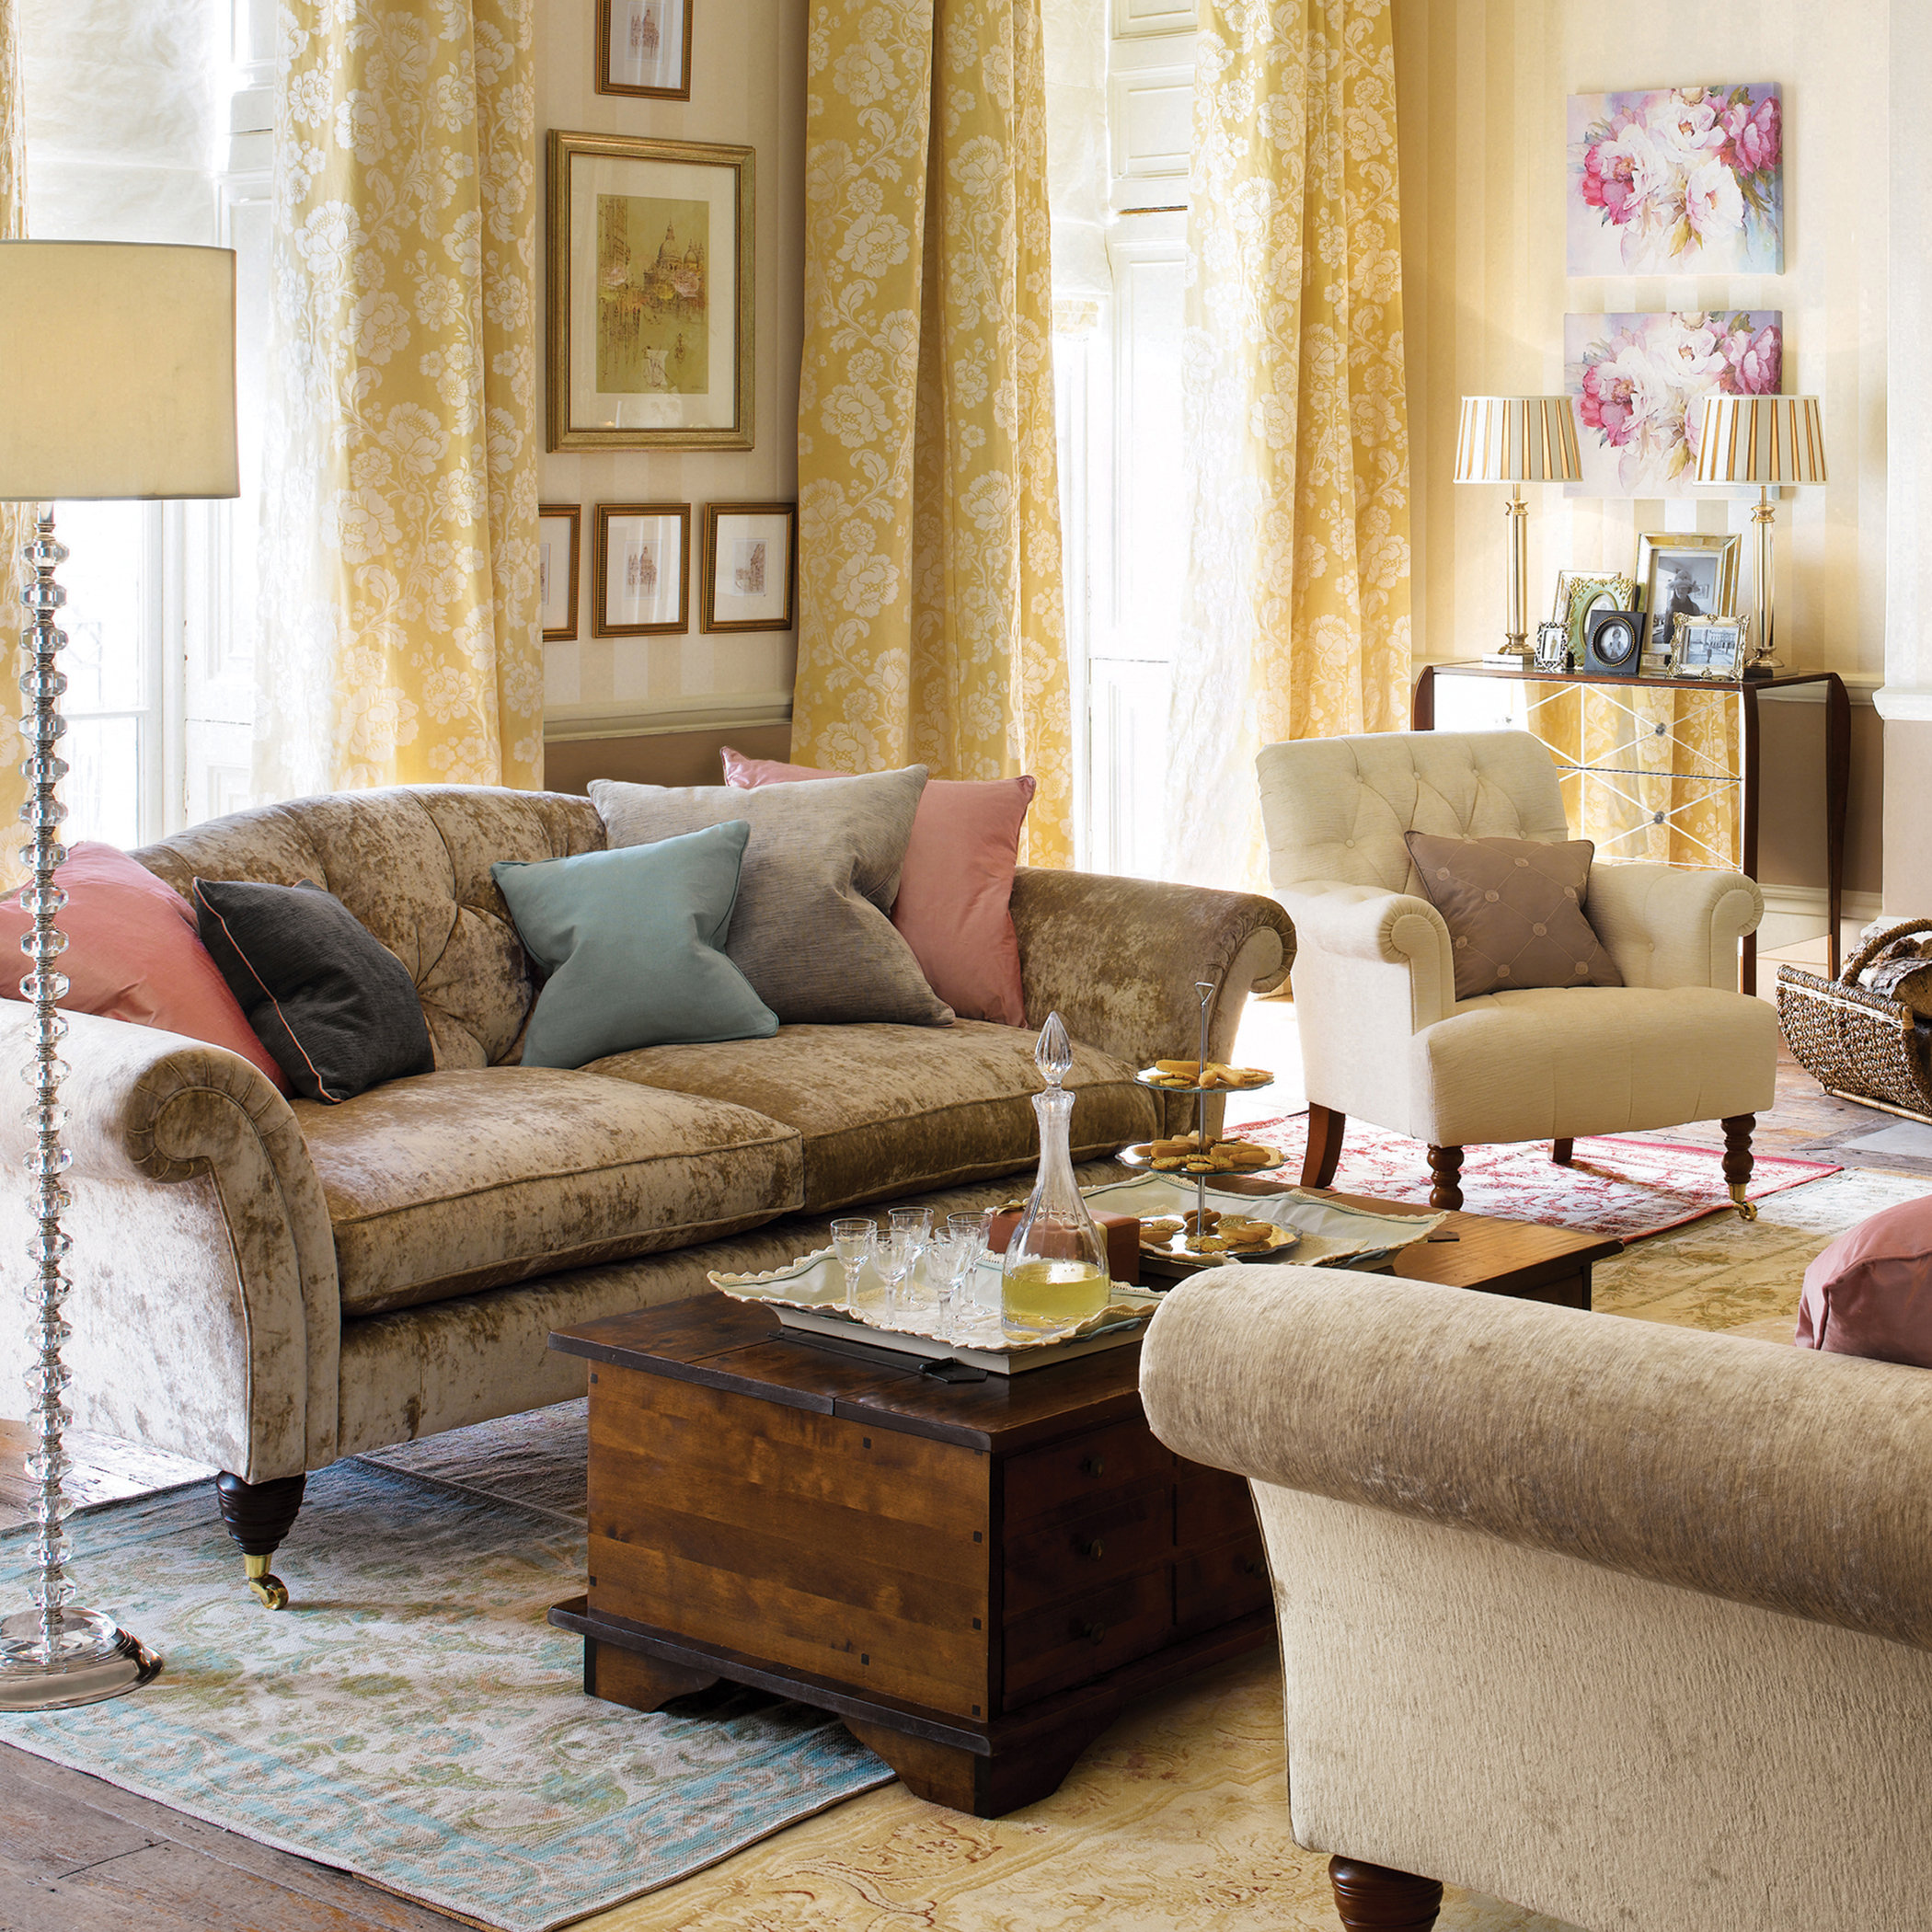 Beautiful Laura Ashley Home Interior Design